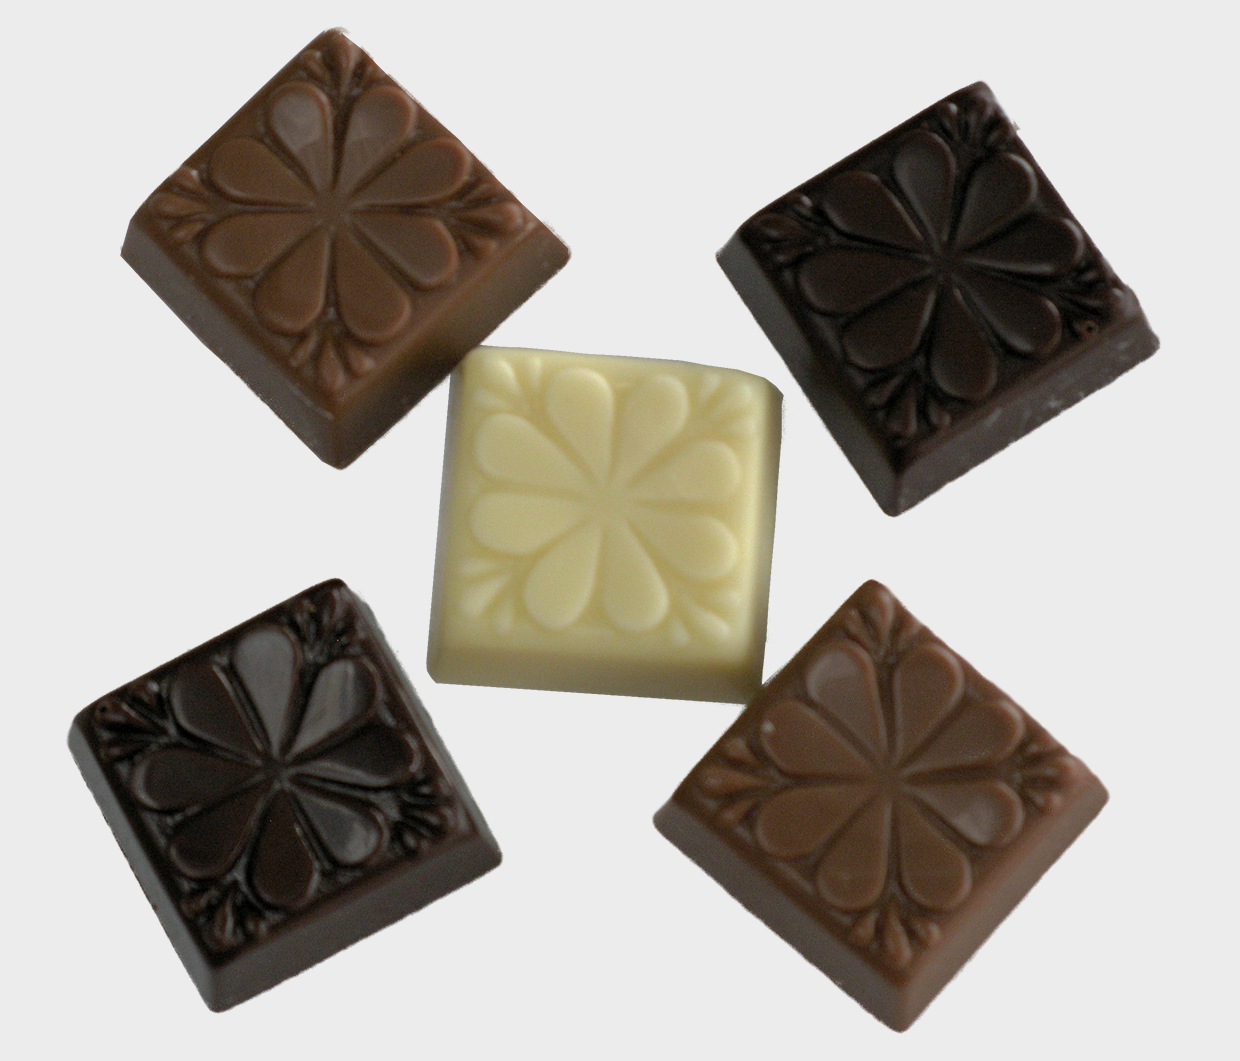 Clover leaf chocolates